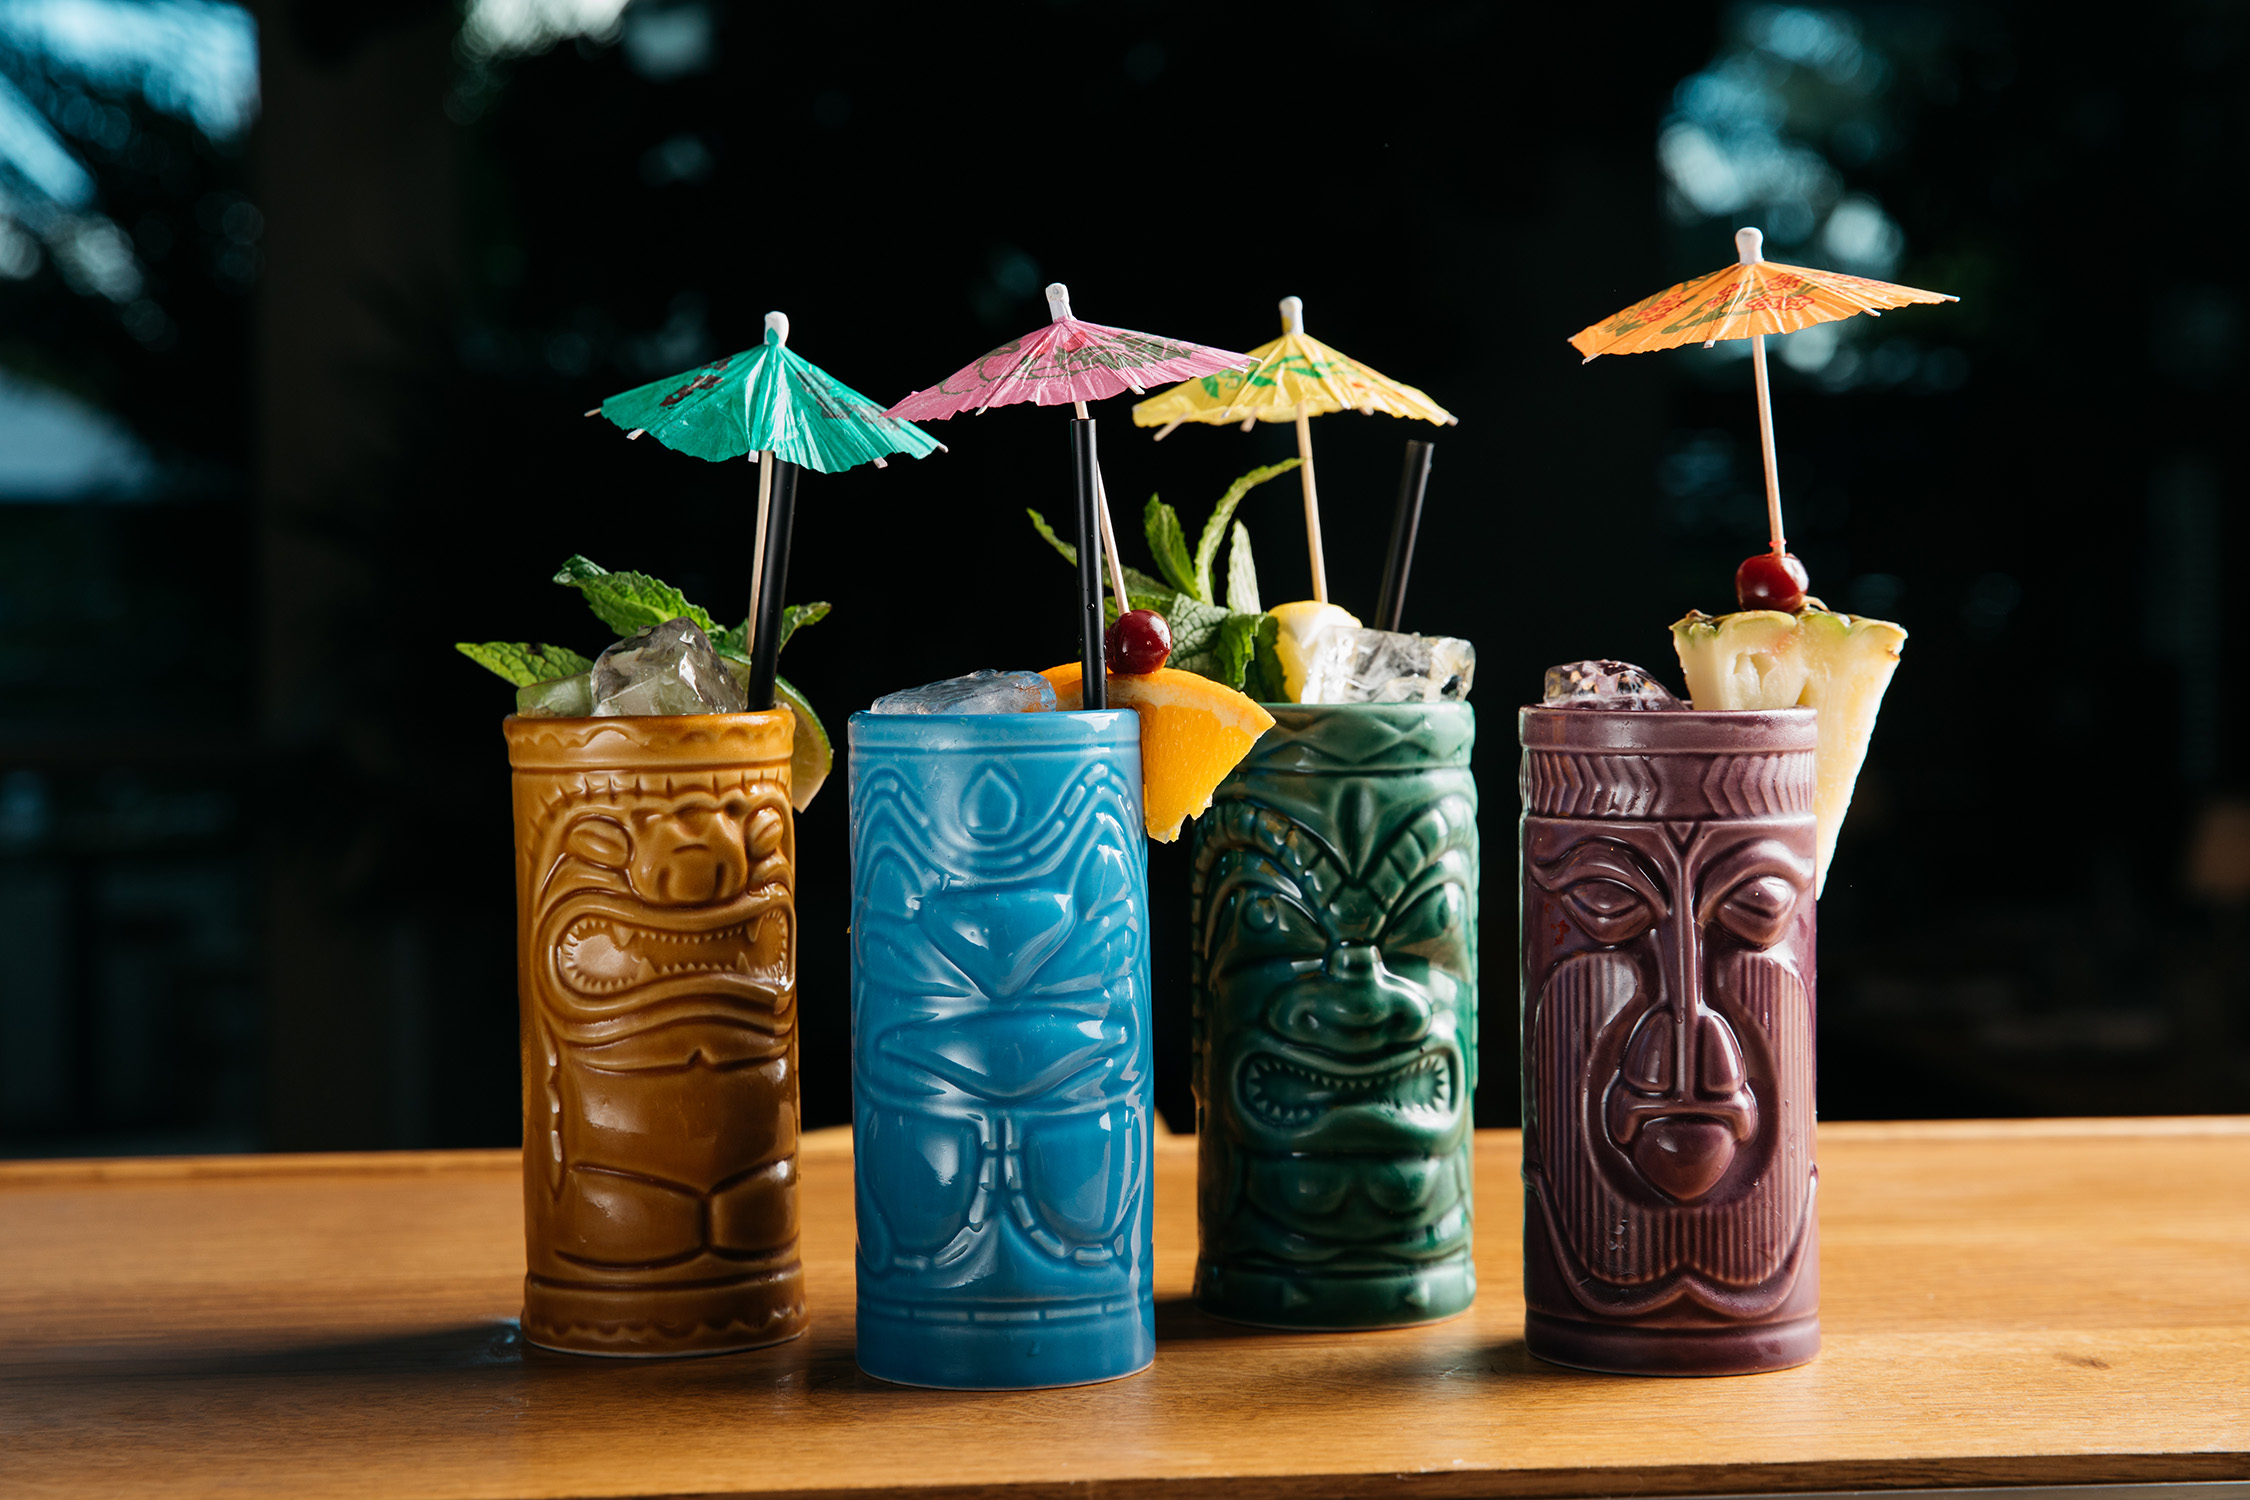 City-Cool-Nila-Do-Simon-Patrick-Chin-Geoffrey Zakarian-Brian-Van-Flandern-Point-Royal-and-Counter-Point-zombified-fog-cutter-mai-tai-pina-colada